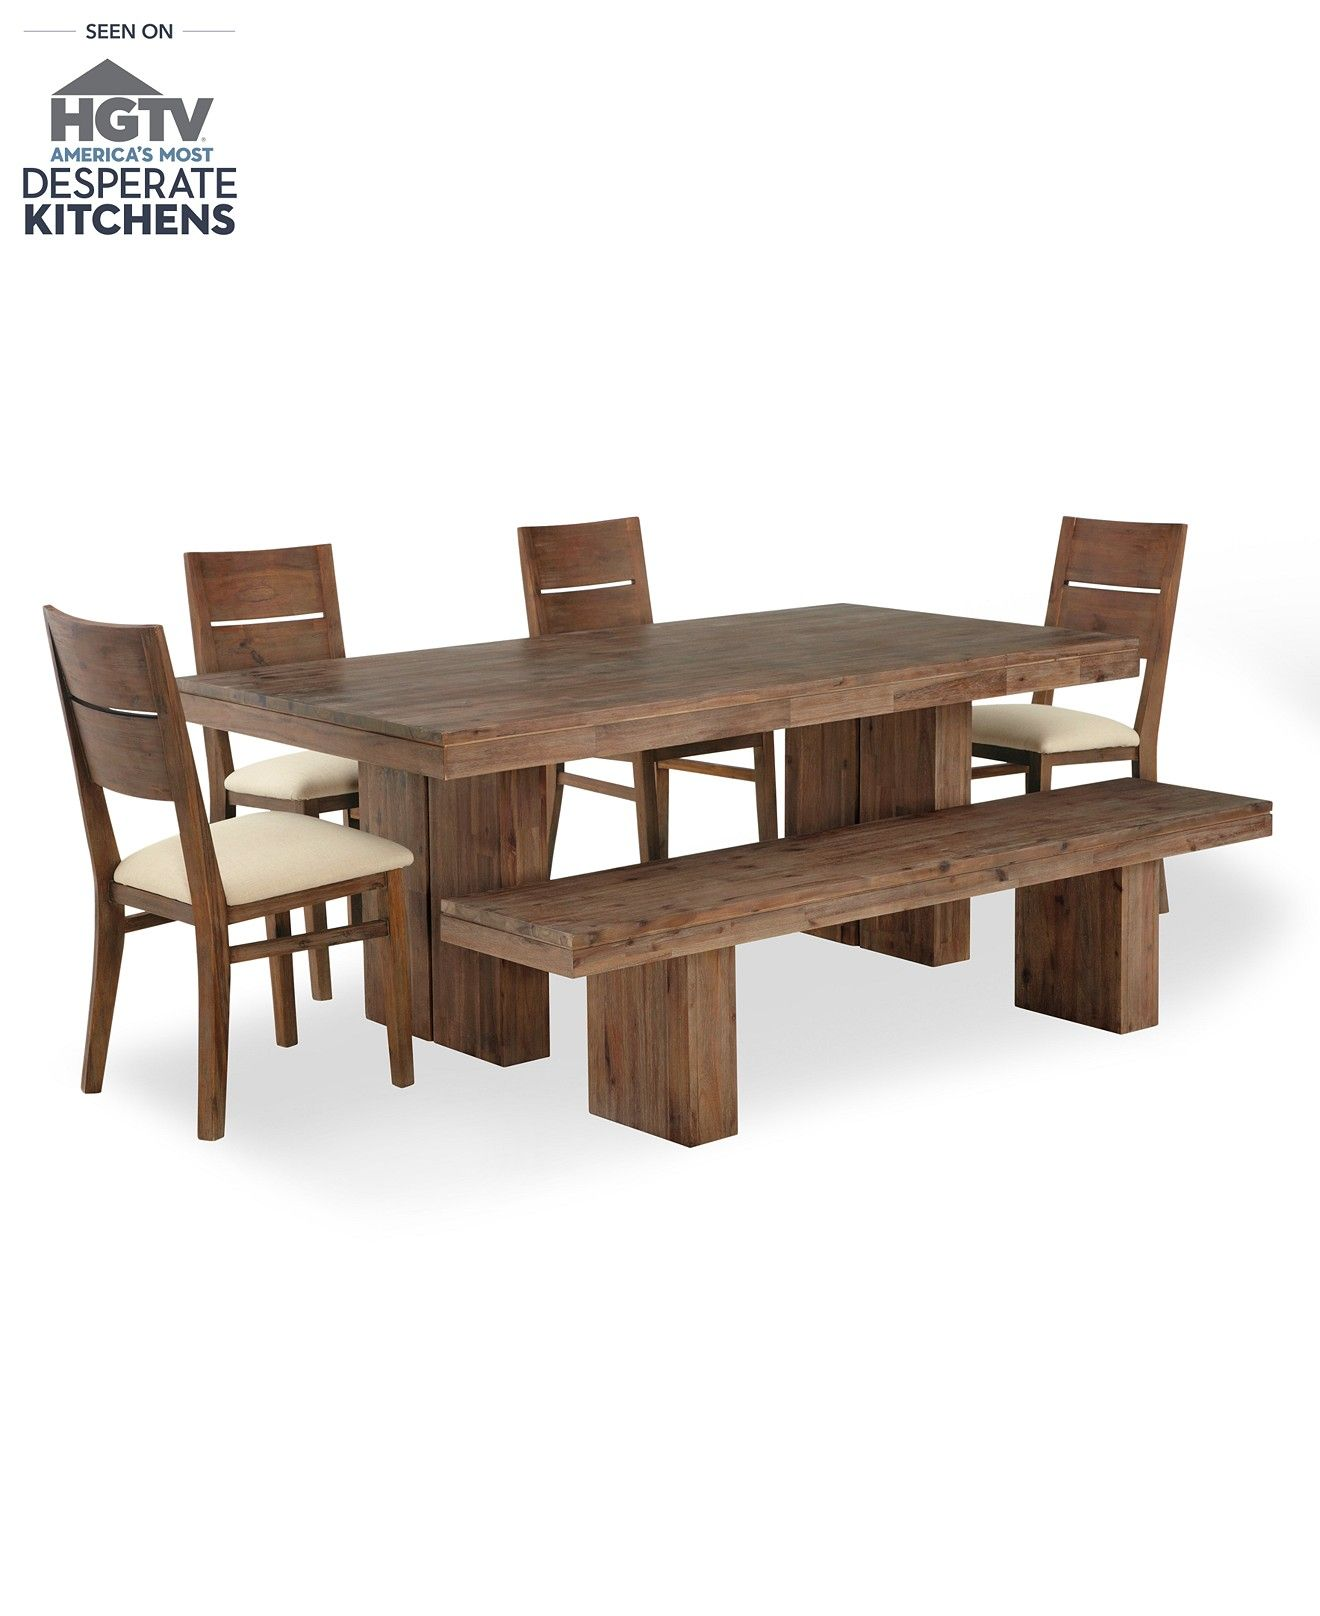 Champagne Dining Room Furniture, 6 Piece Set (Dining Table, 4 Side Chairs and 1 Bench) - Shop All Dining Room - Furniture - Macy's